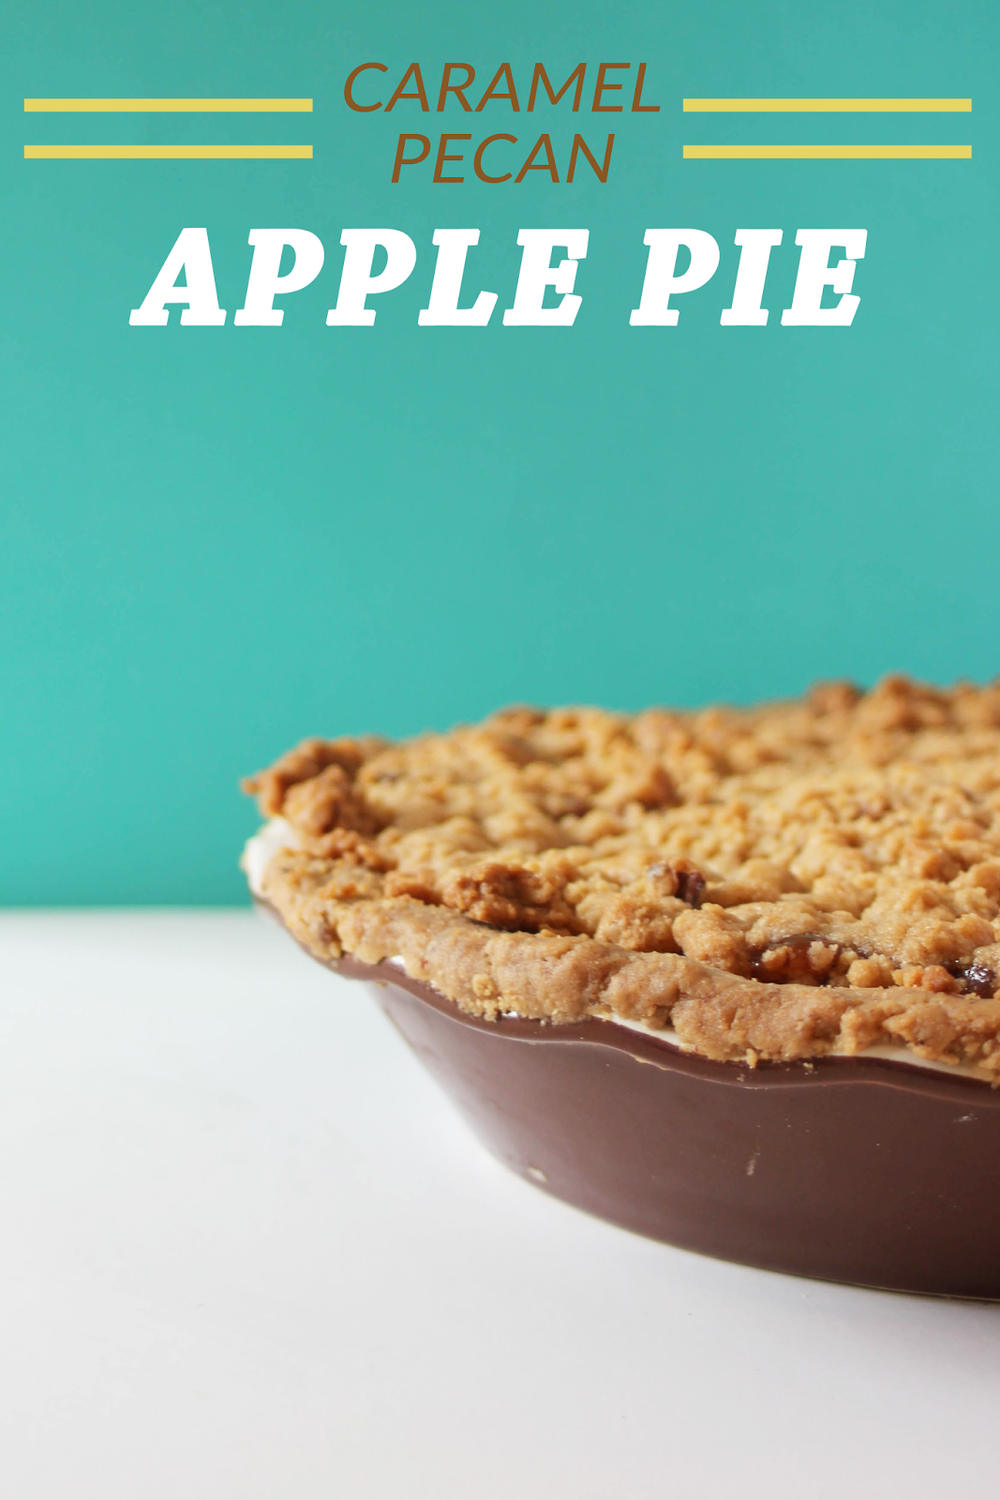 Caramel Pecan Apple Pie // This would be the perfect recipe to change up the traditional apple pie for Thanksgiving this year! http://www.littlecityadventures.com/2015/10/recipe-caramel-pecan-apple-pie.html #littlecitykitchen